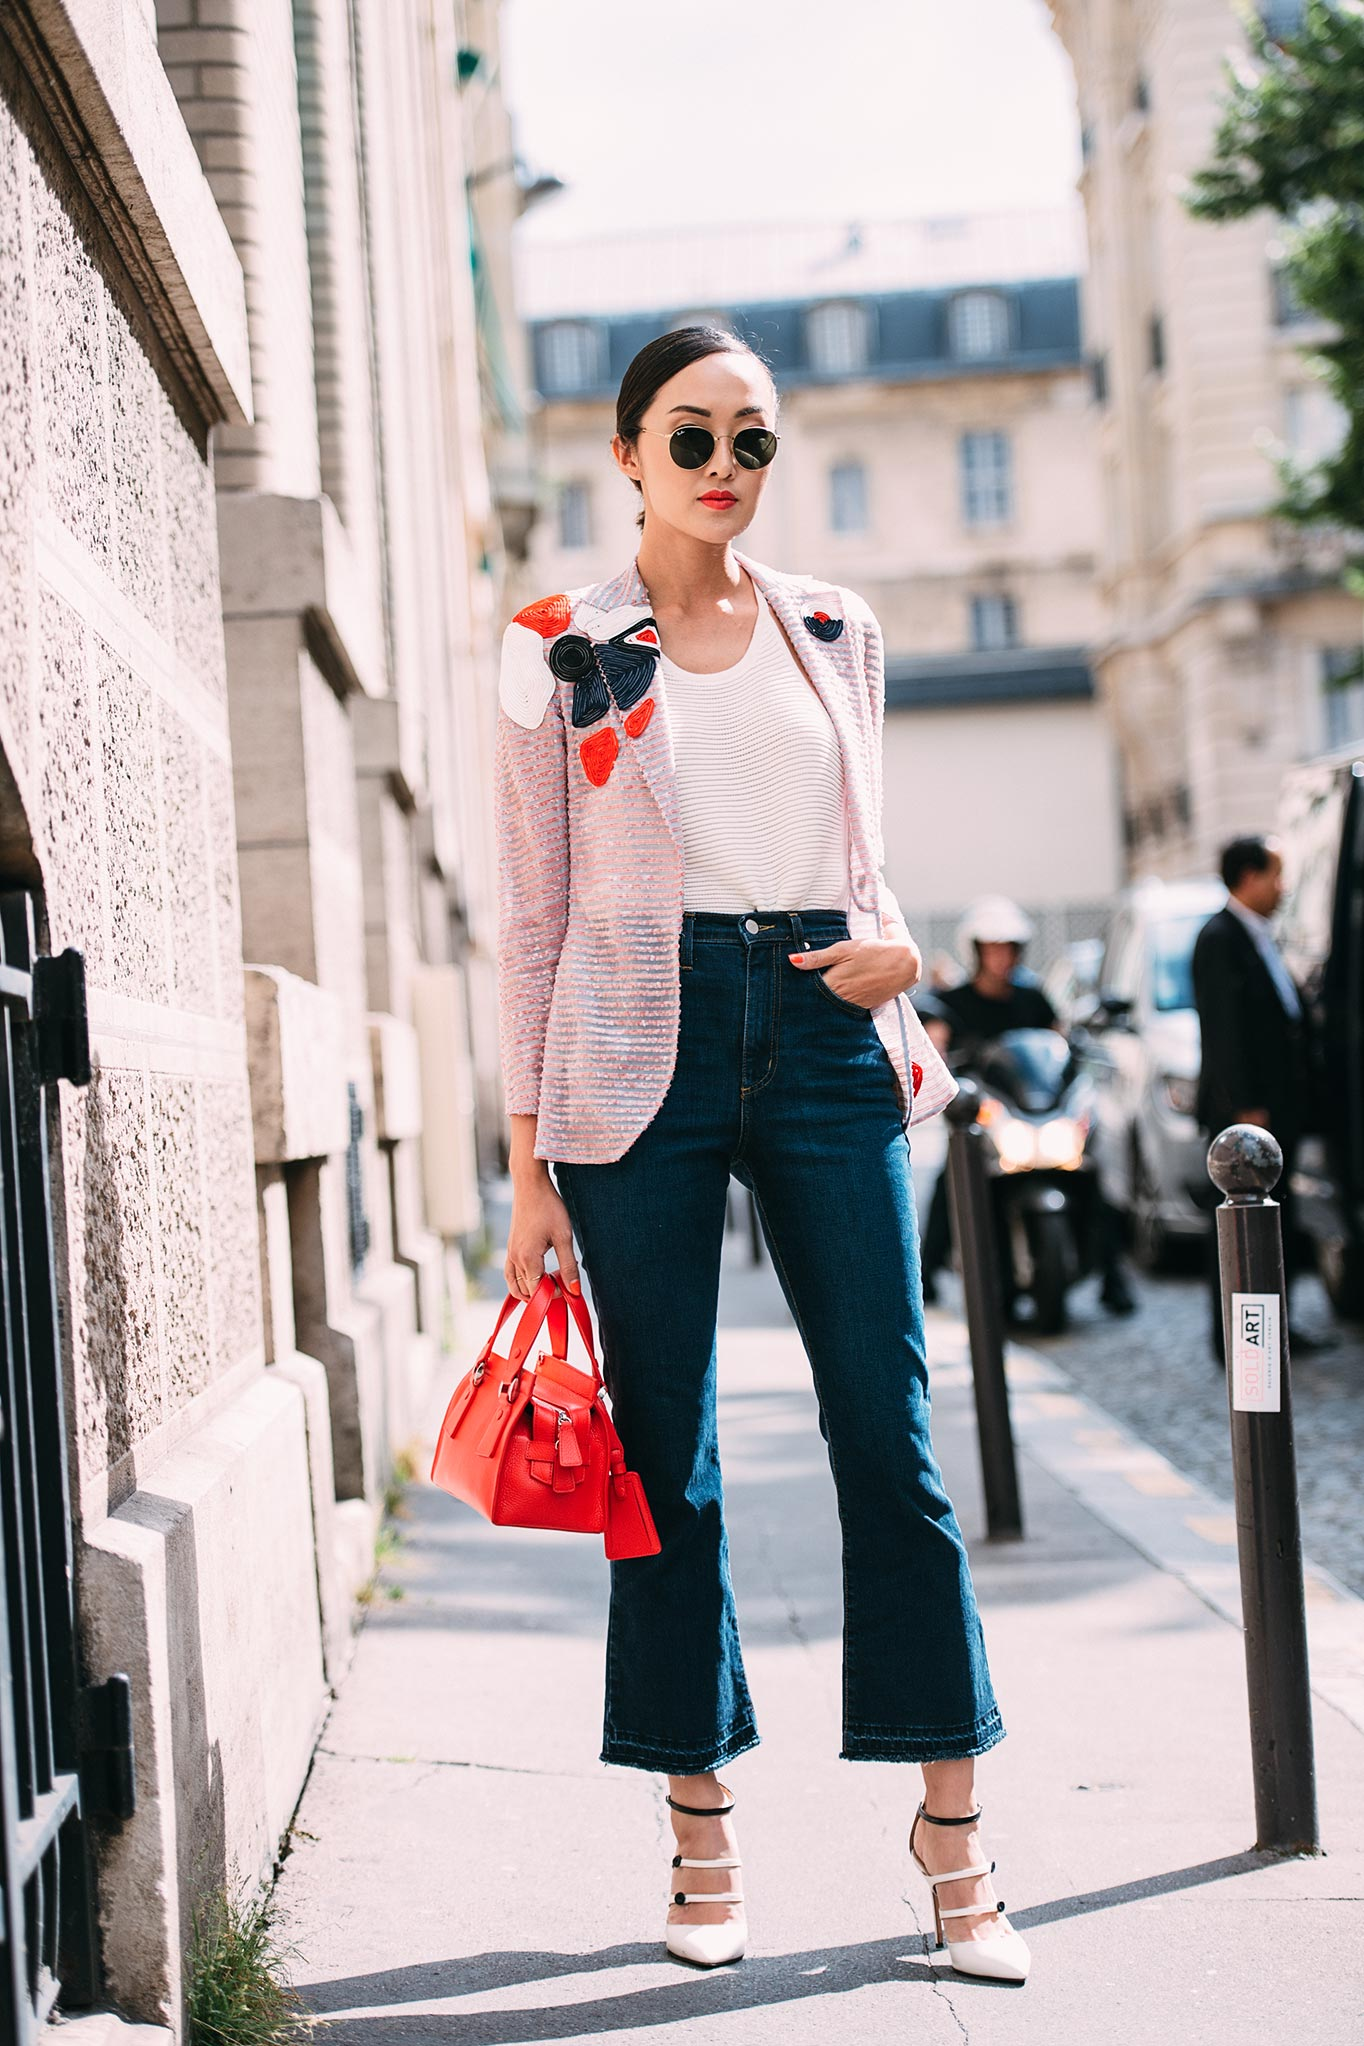 Chriselle Lim at Paris Couture Fashion Week